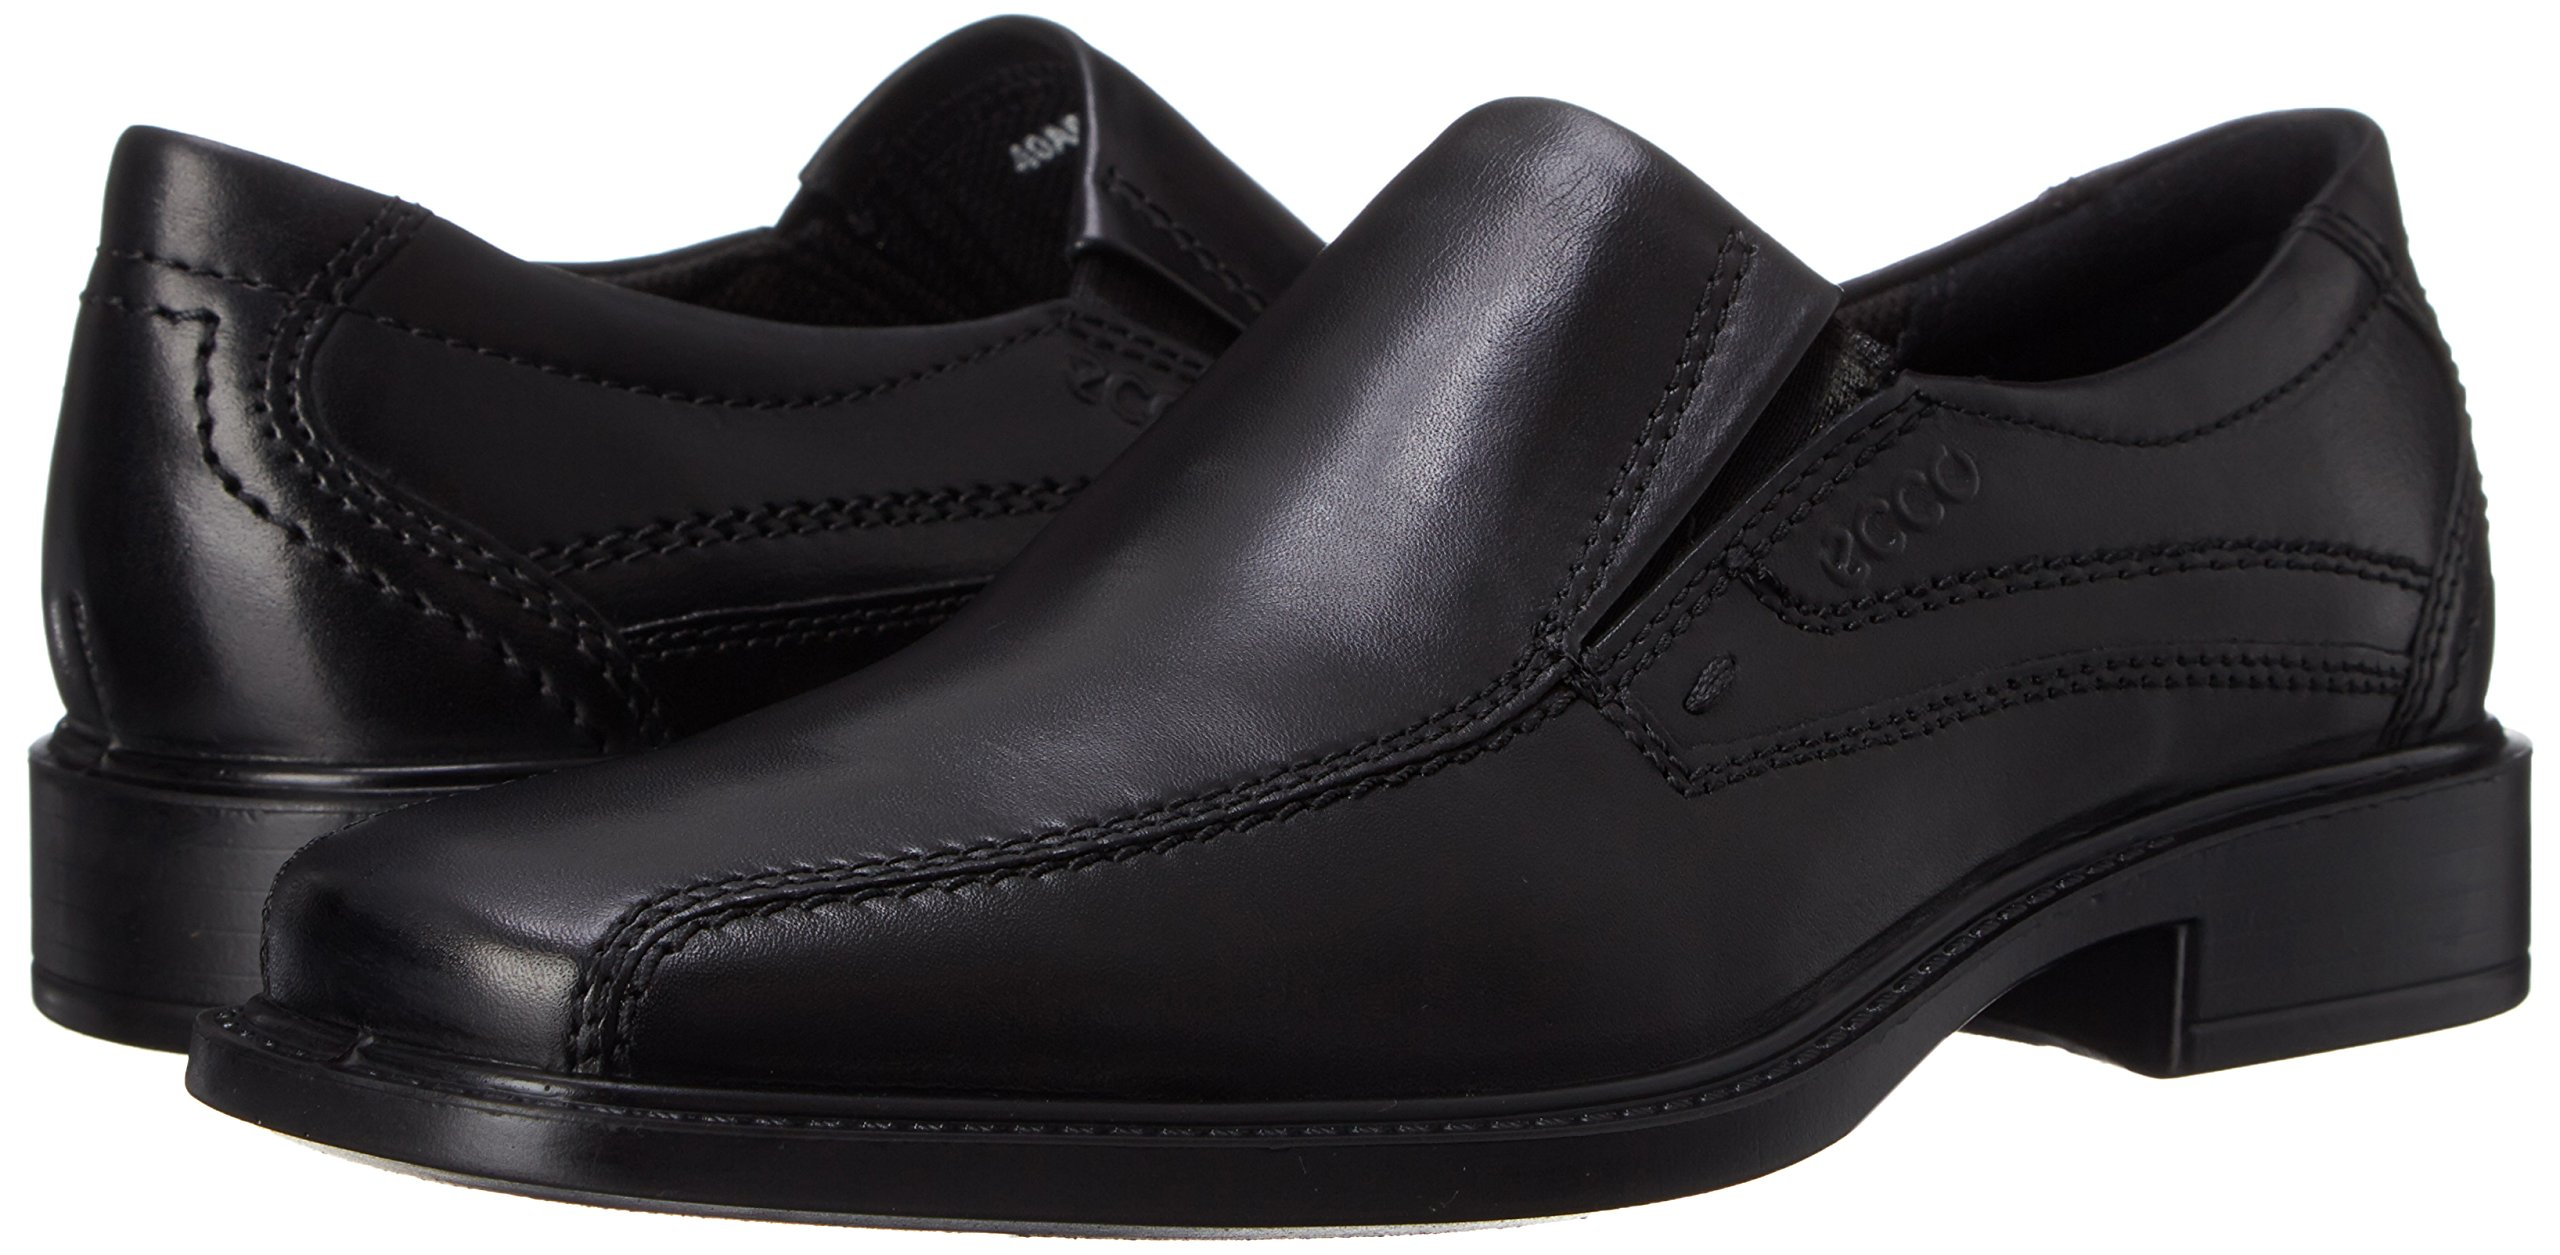 ECCO Men's New Jersey Slip On,Black,39 EU (US Men's 5-5.5 M) by ECCO (Image #7)